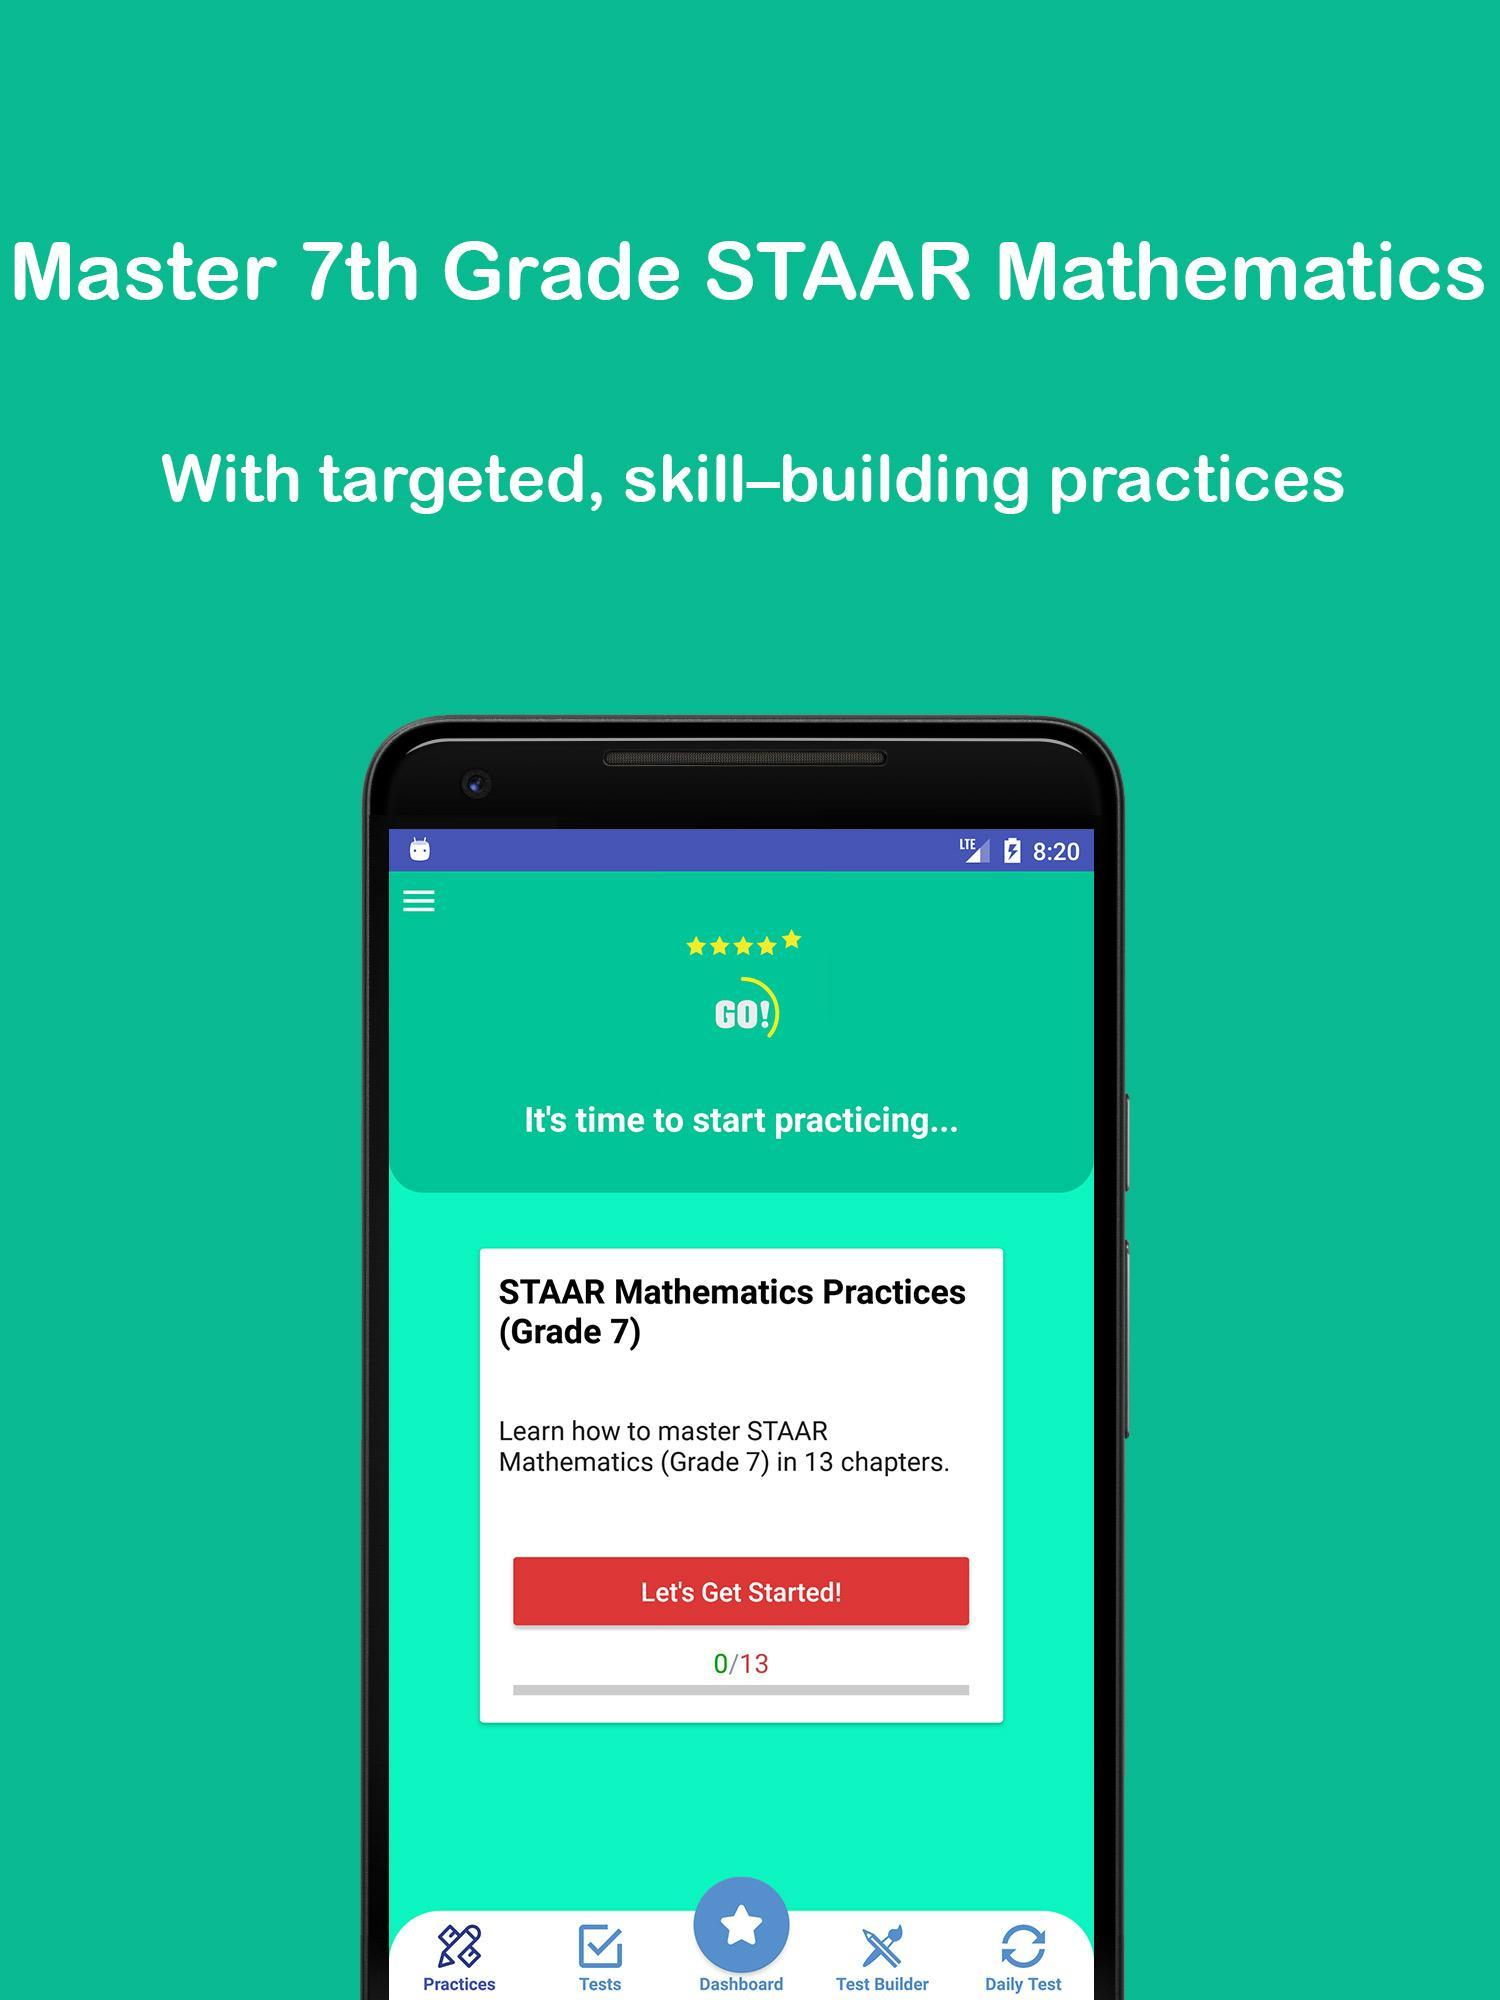 Grade 7 STAAR Math Test & Practice 2018-2019 for Android - APK Download